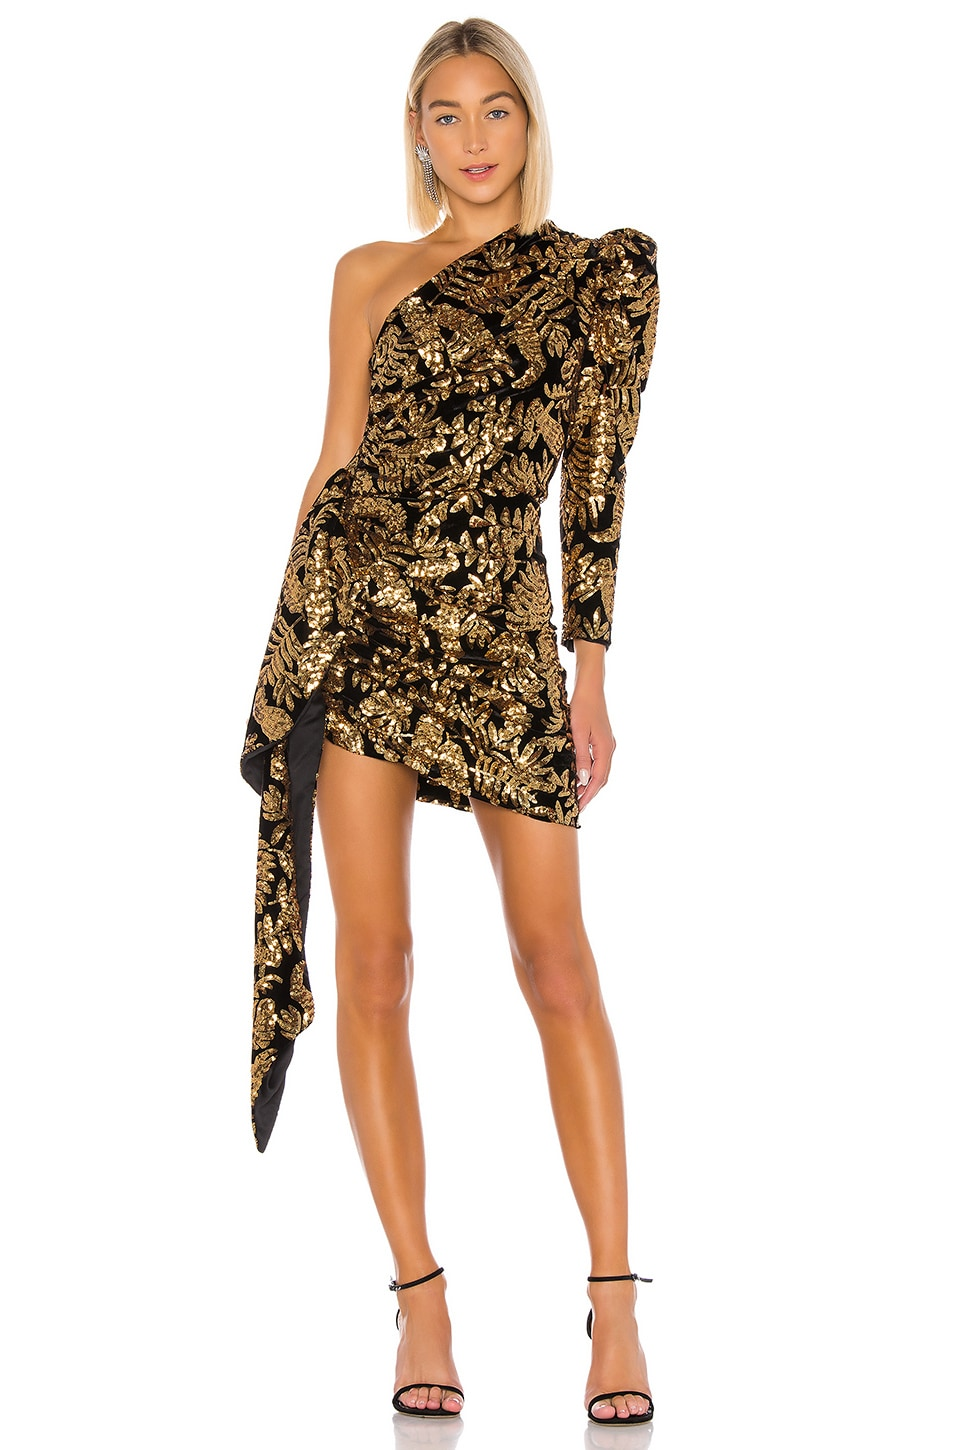 GIUSEPPE DI MORABITO One Shoulder Dress in Black & Gold